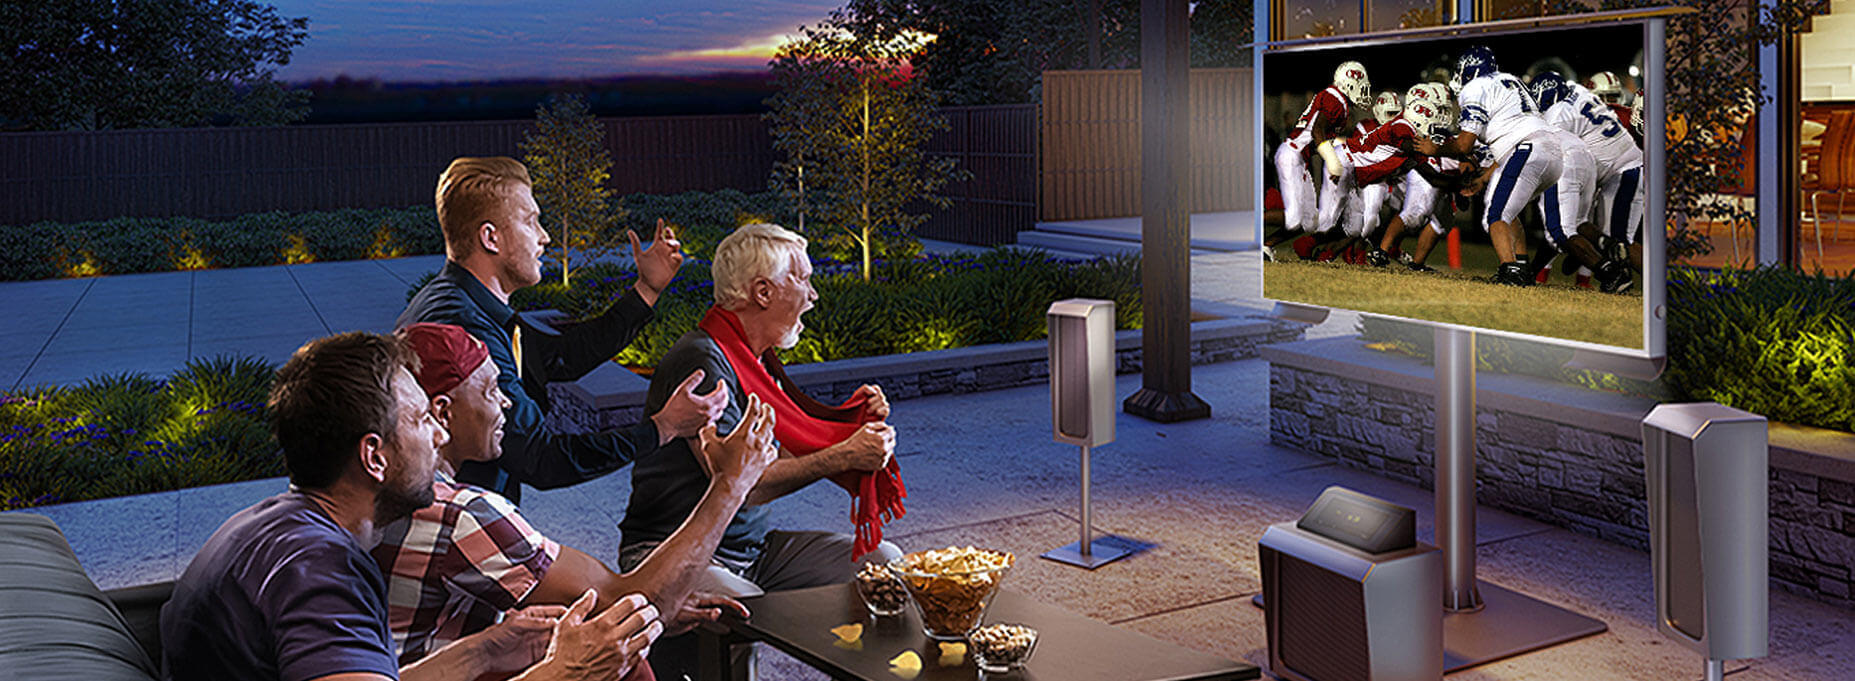 Group of men in a patio watching an American football in a cool looking outdoor TV with its speakers and subwoofers.